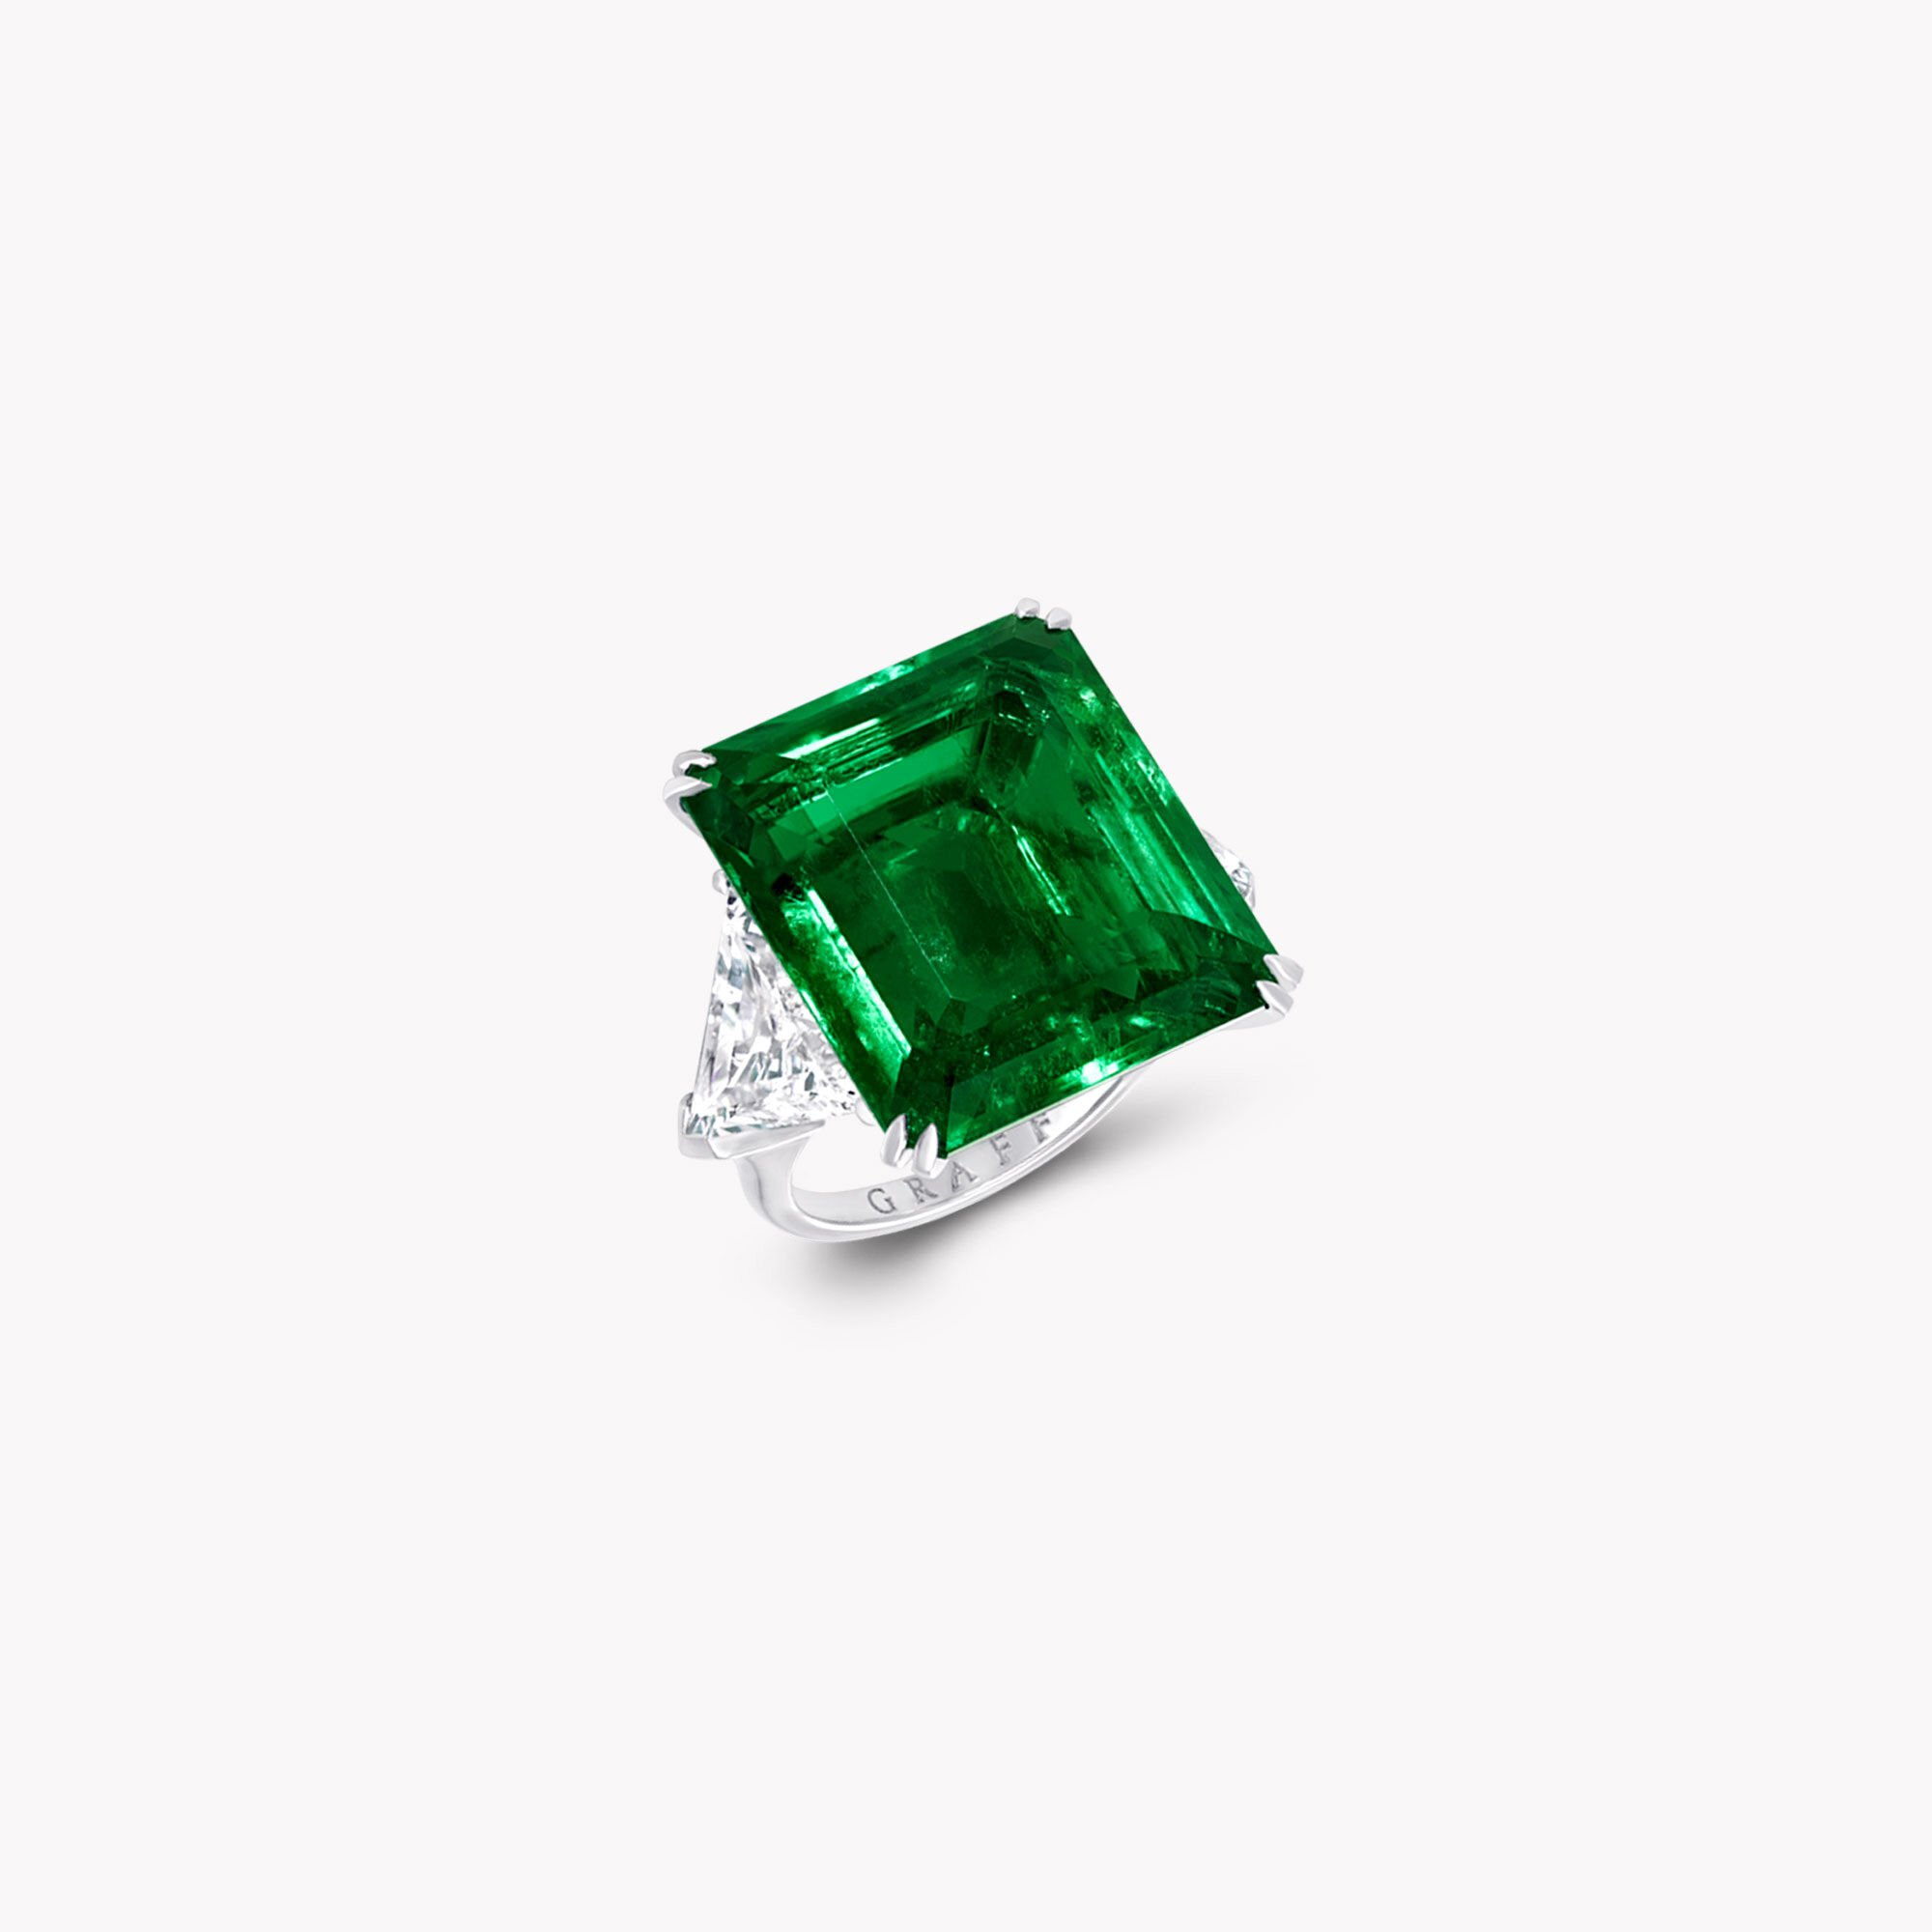 A Graff emerald cut emerald and white diamond high jewellery ring